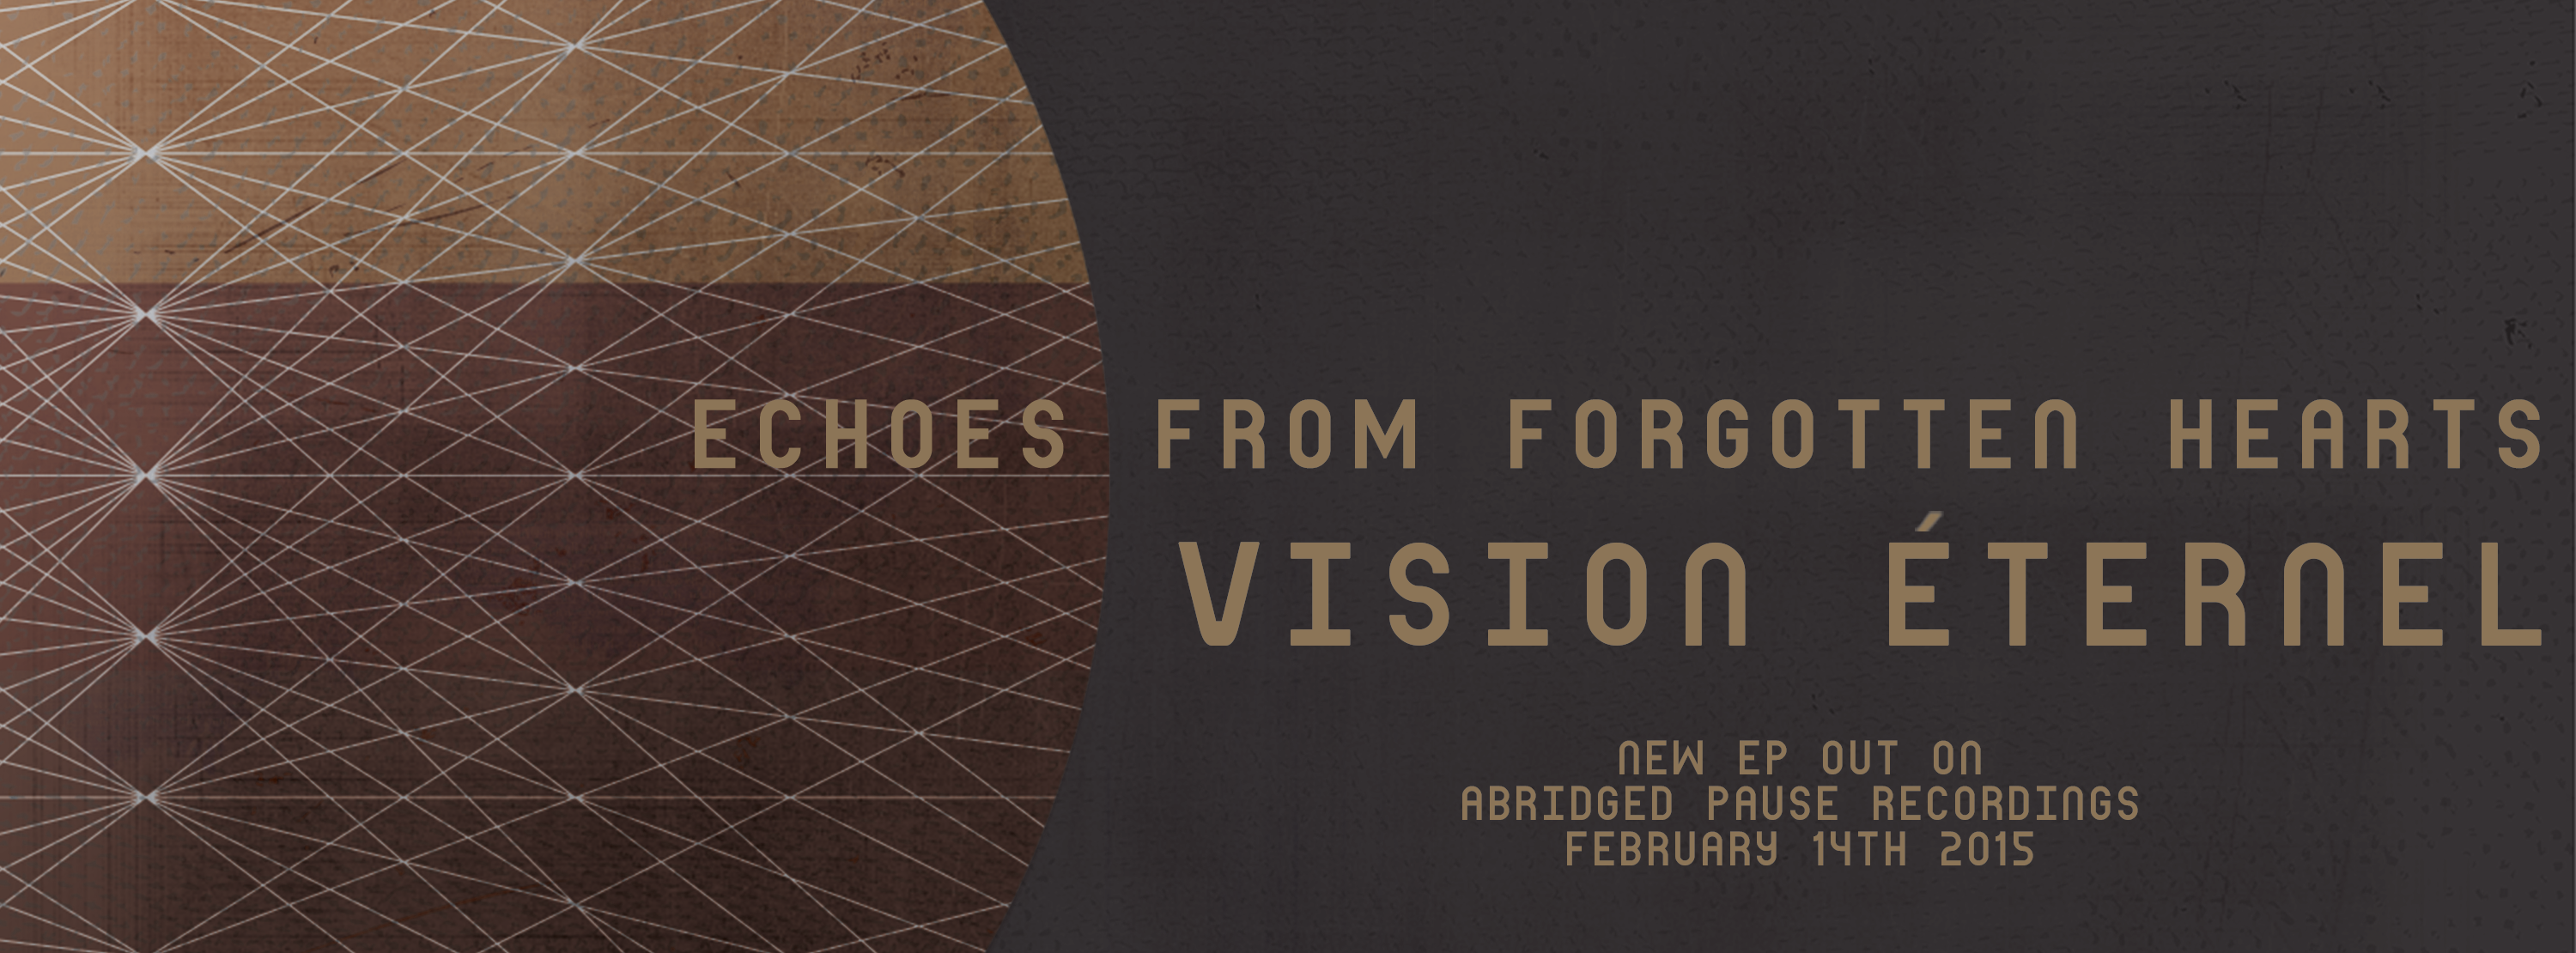 """Vision Éternel - """"Echoes From Forgotten Hearts"""" EP flyer."""